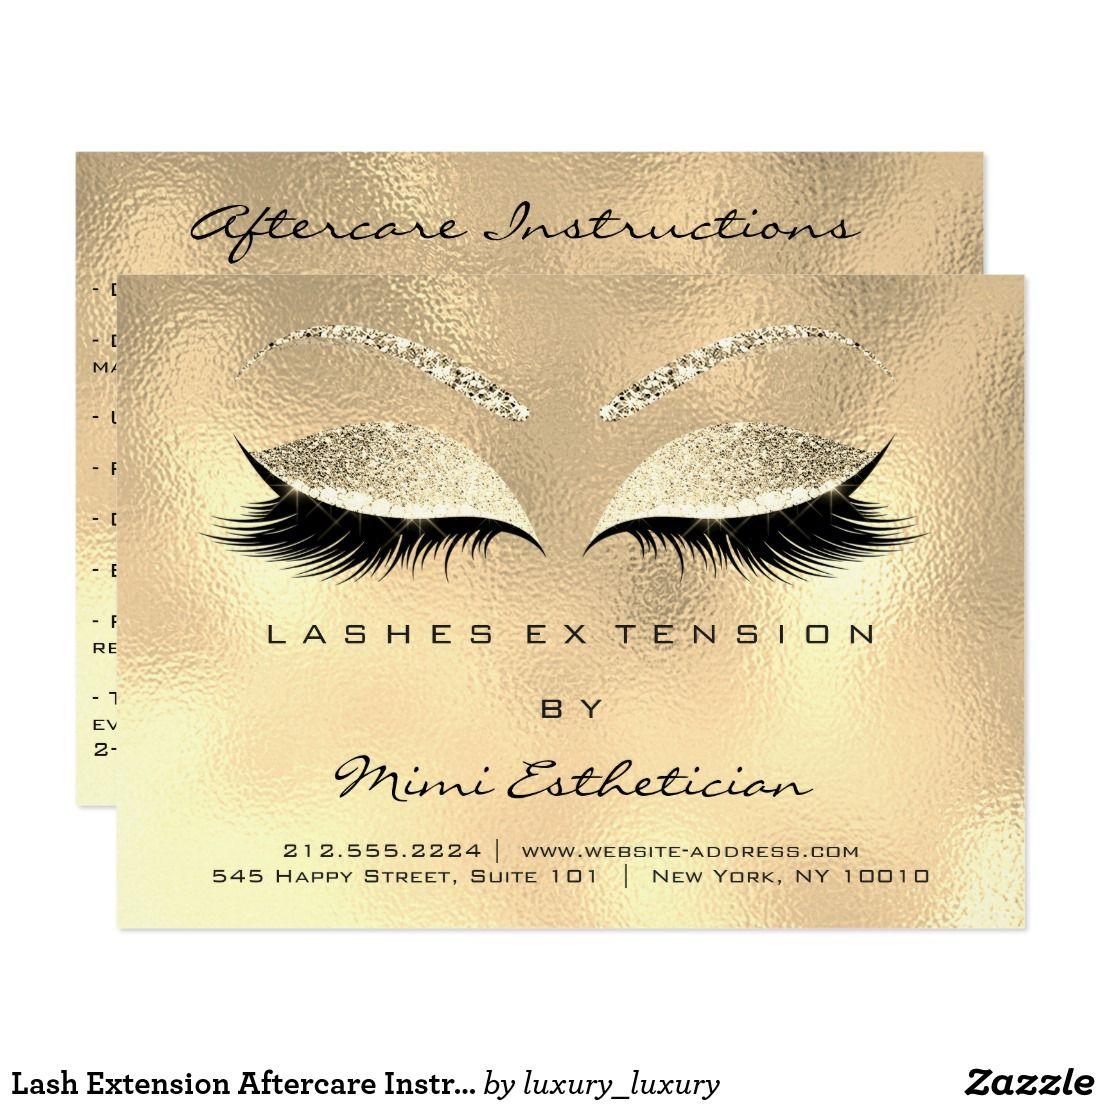 Lash Extension Aftercare Instruction Gold Gllitter Card